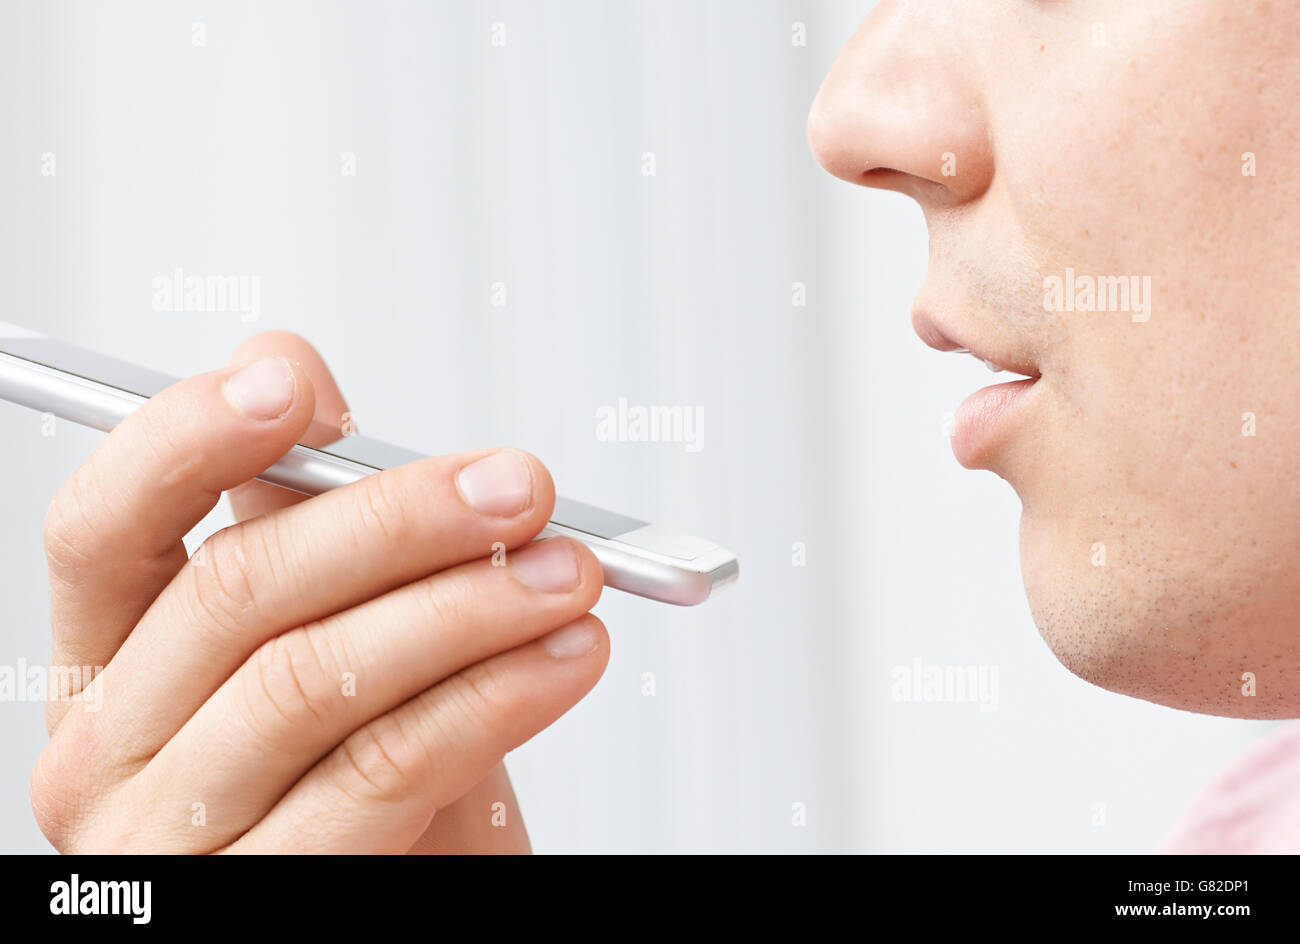 Man Using Internet Voice Search Technology On Mobile Phone - Stock Image